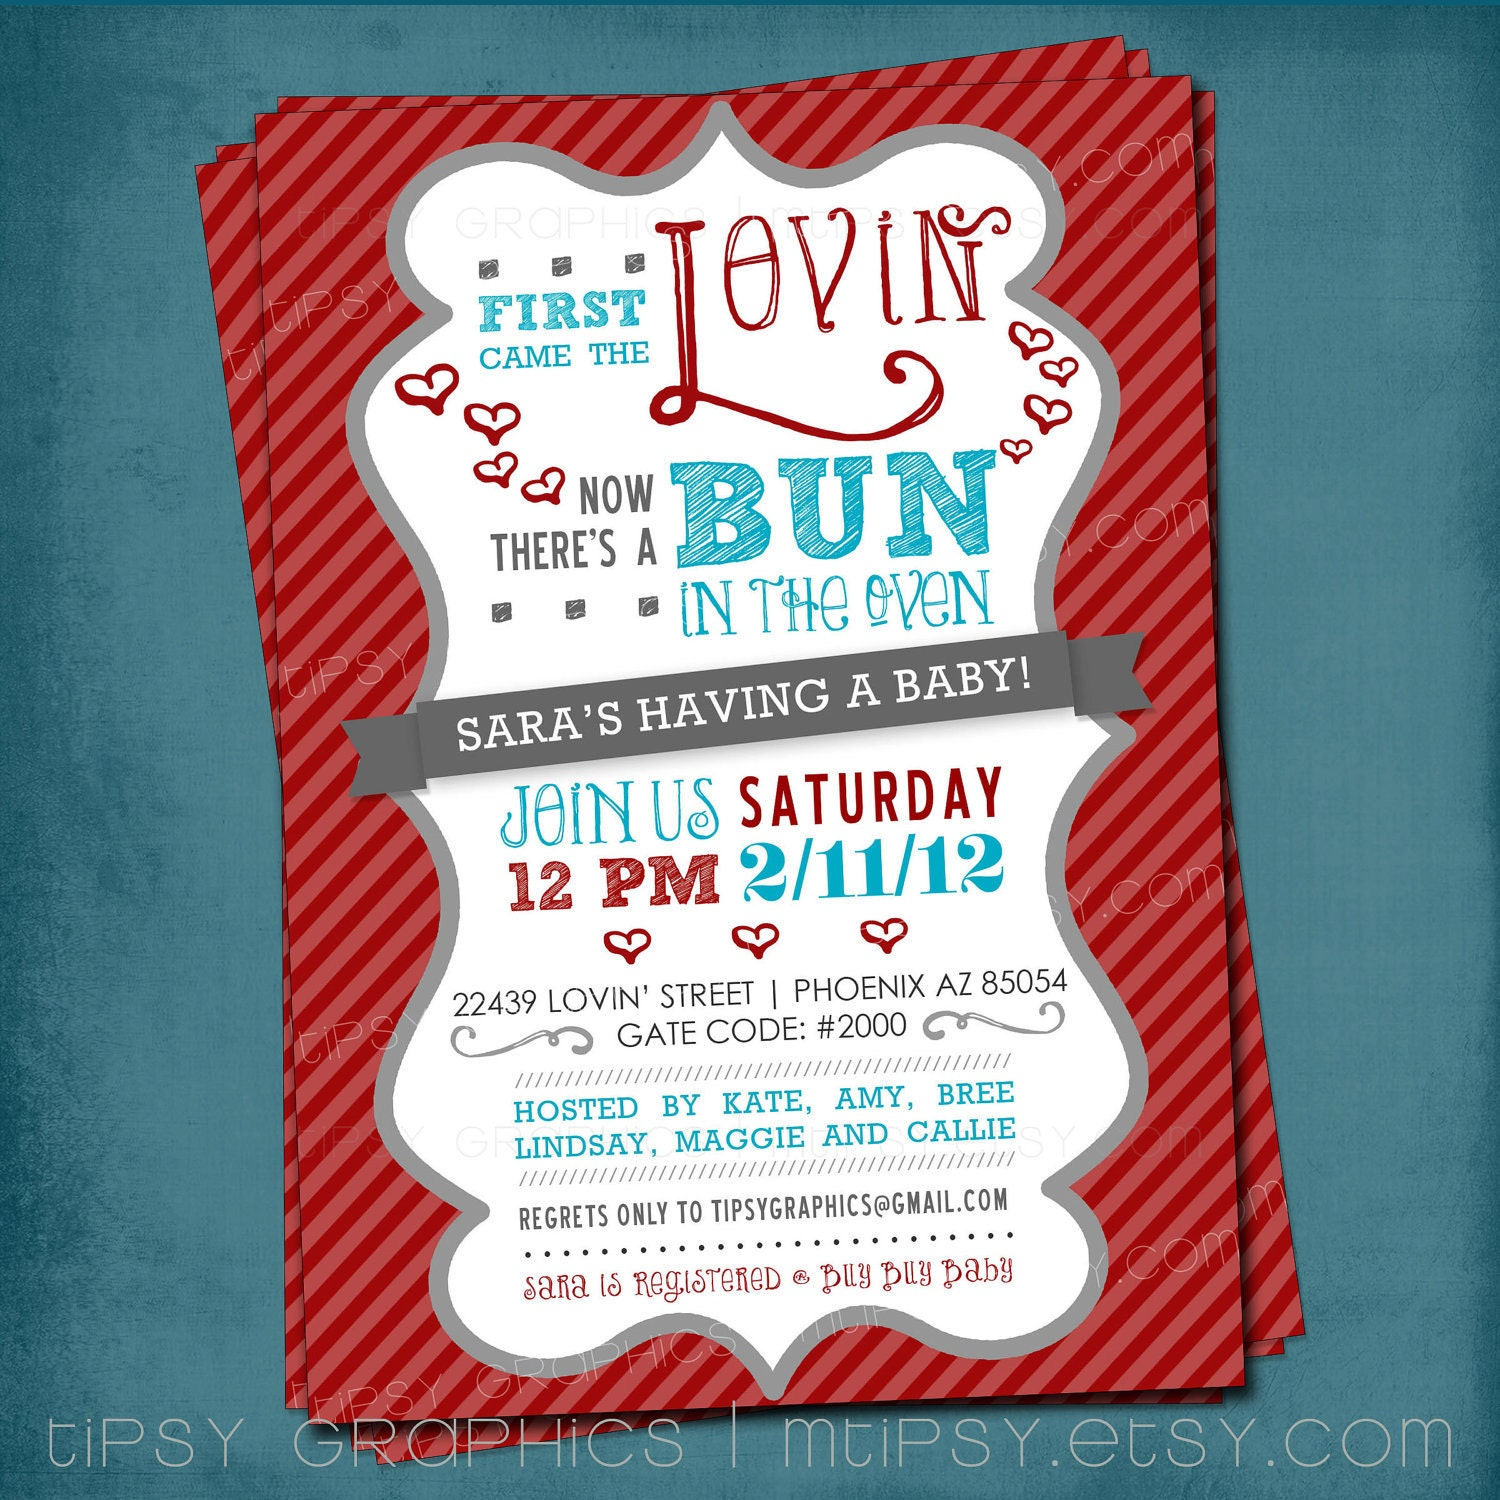 First Came The Lovin Bun In The Oven Baby Shower Invite By